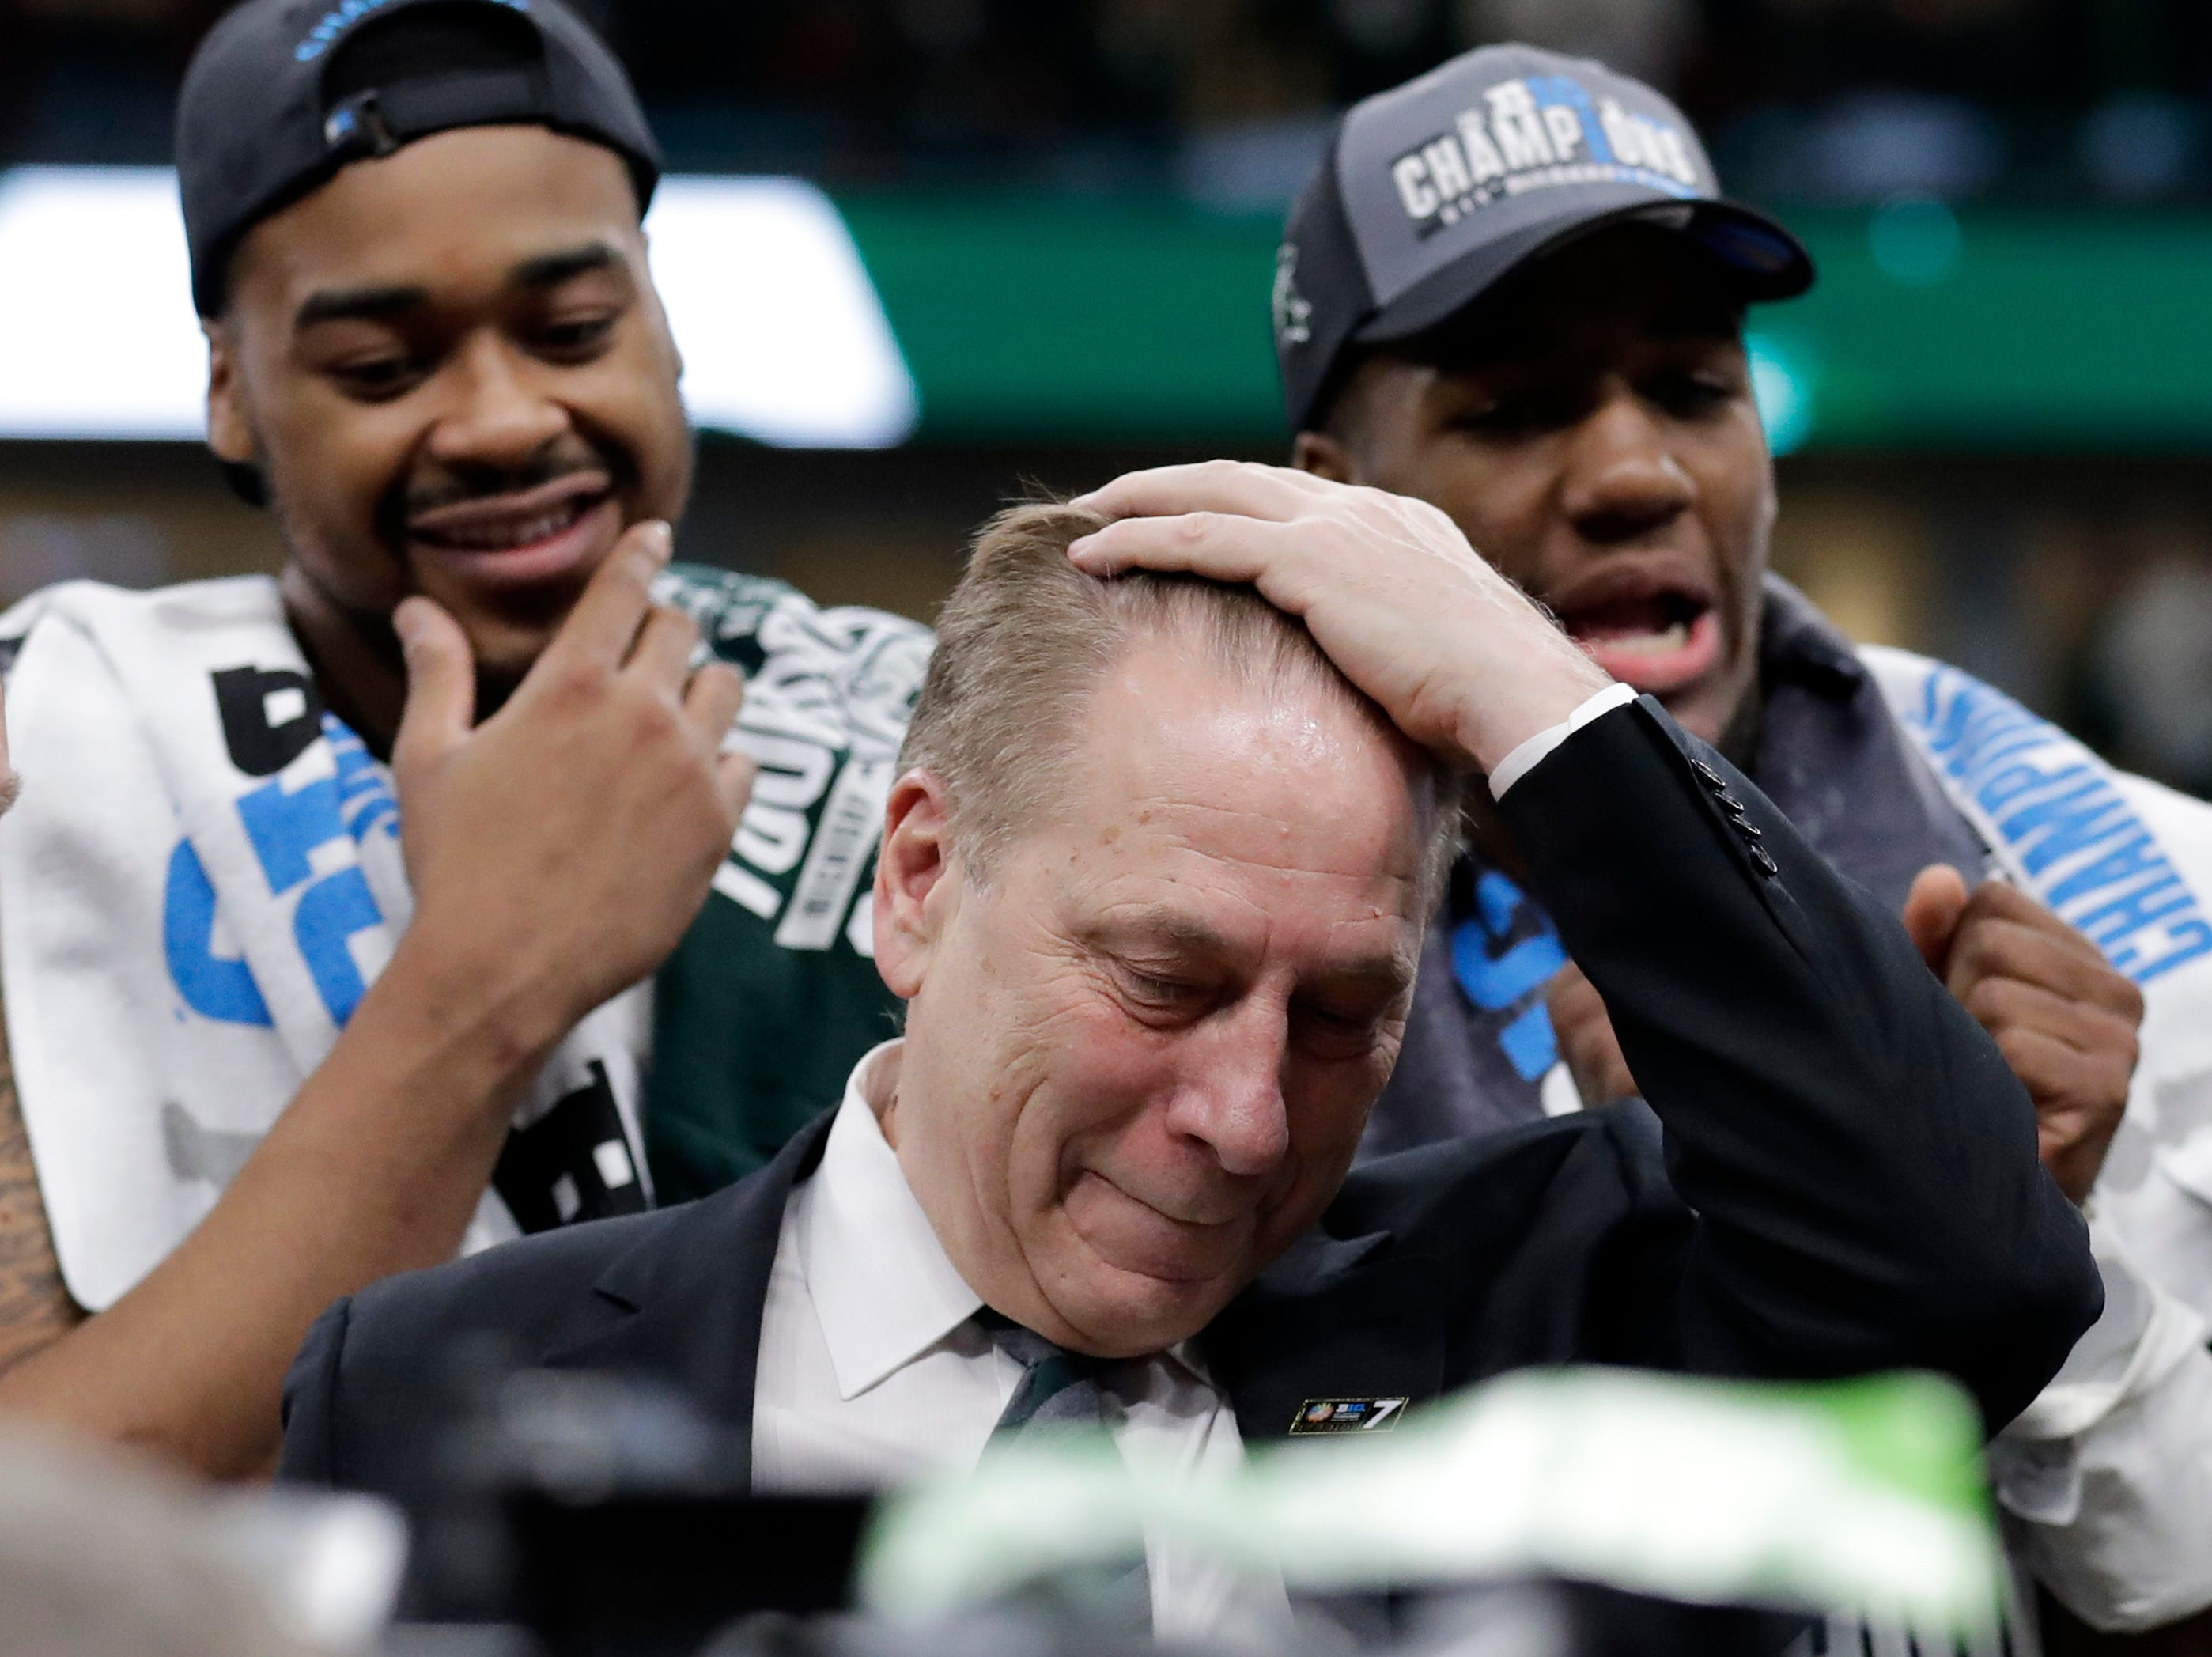 Michigan State head coach Tom Izzo celebrates with his team after defeating Michigan 65-60.